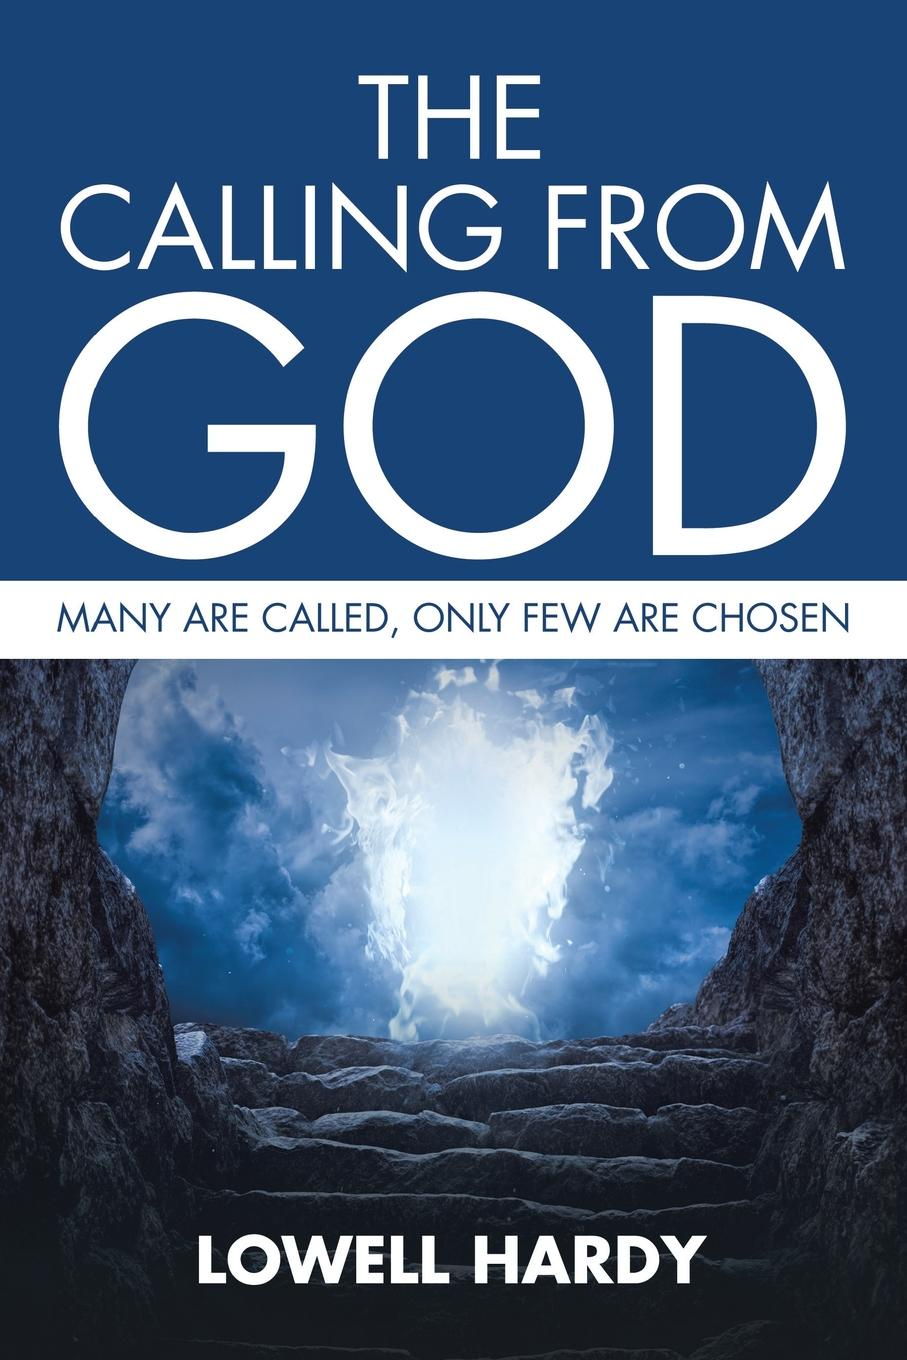 где купить Lowell Hardy The Calling from God. Many are called, only few are chosen по лучшей цене